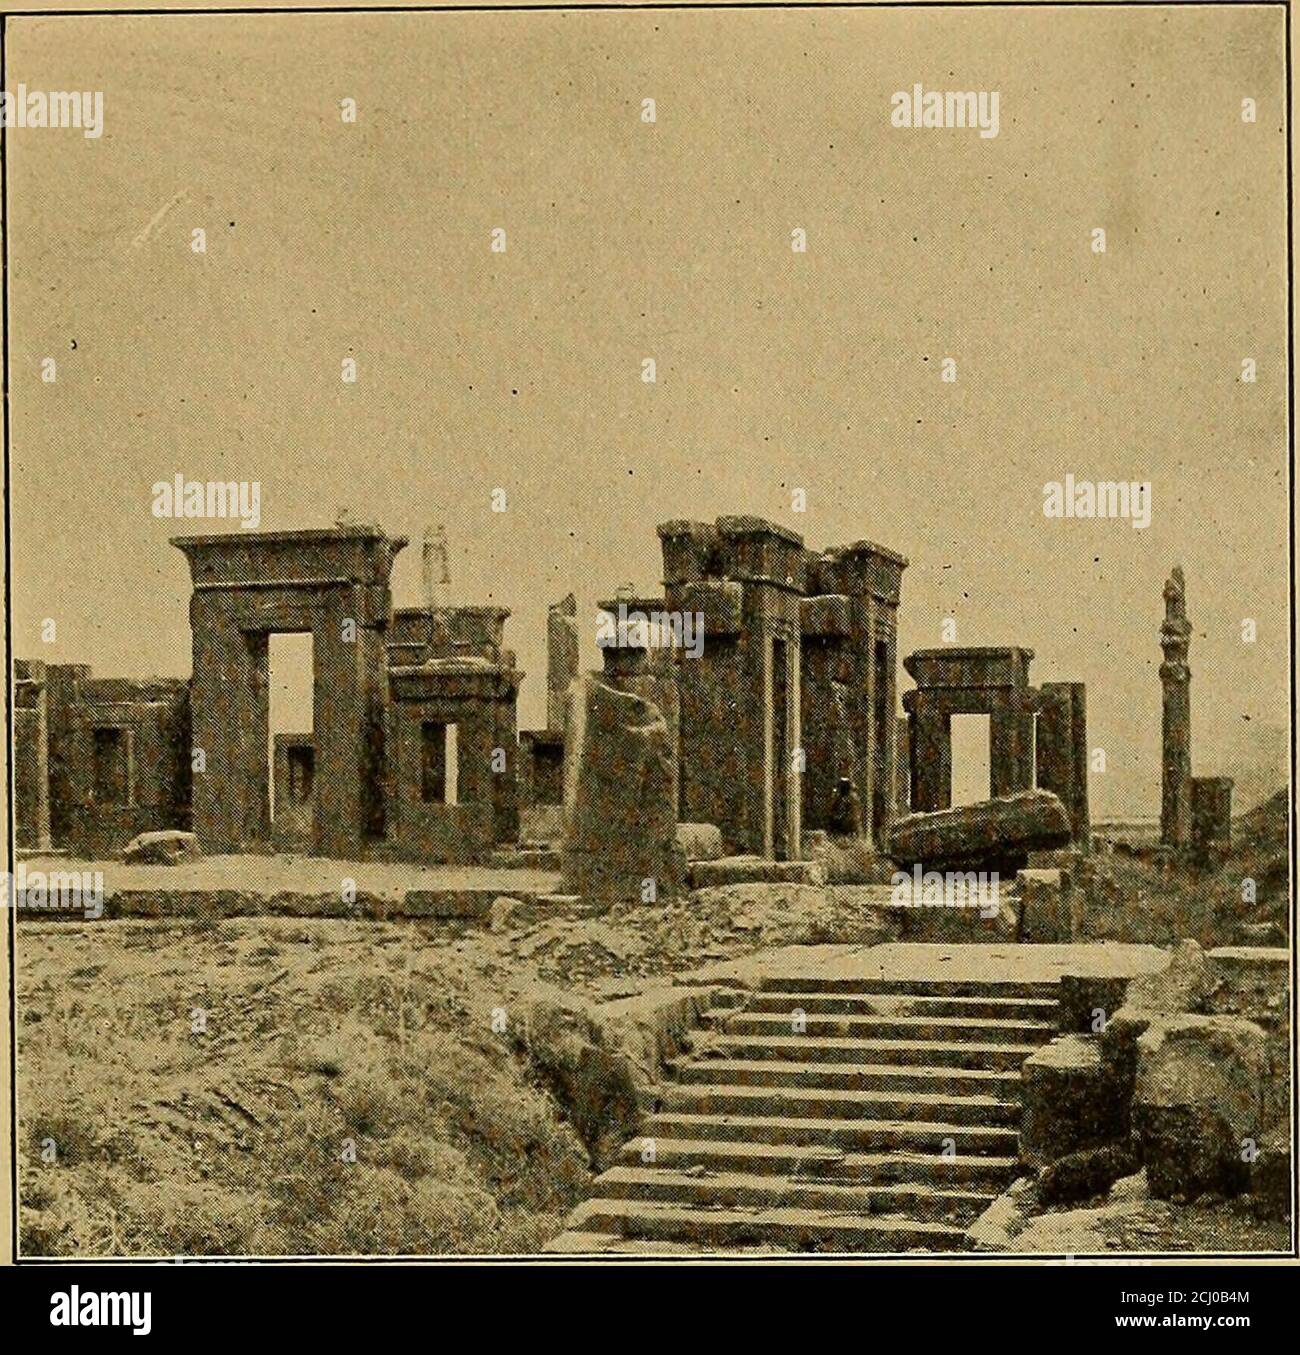 Persepolis 1 High Resolution Stock Photography And Images Alamy